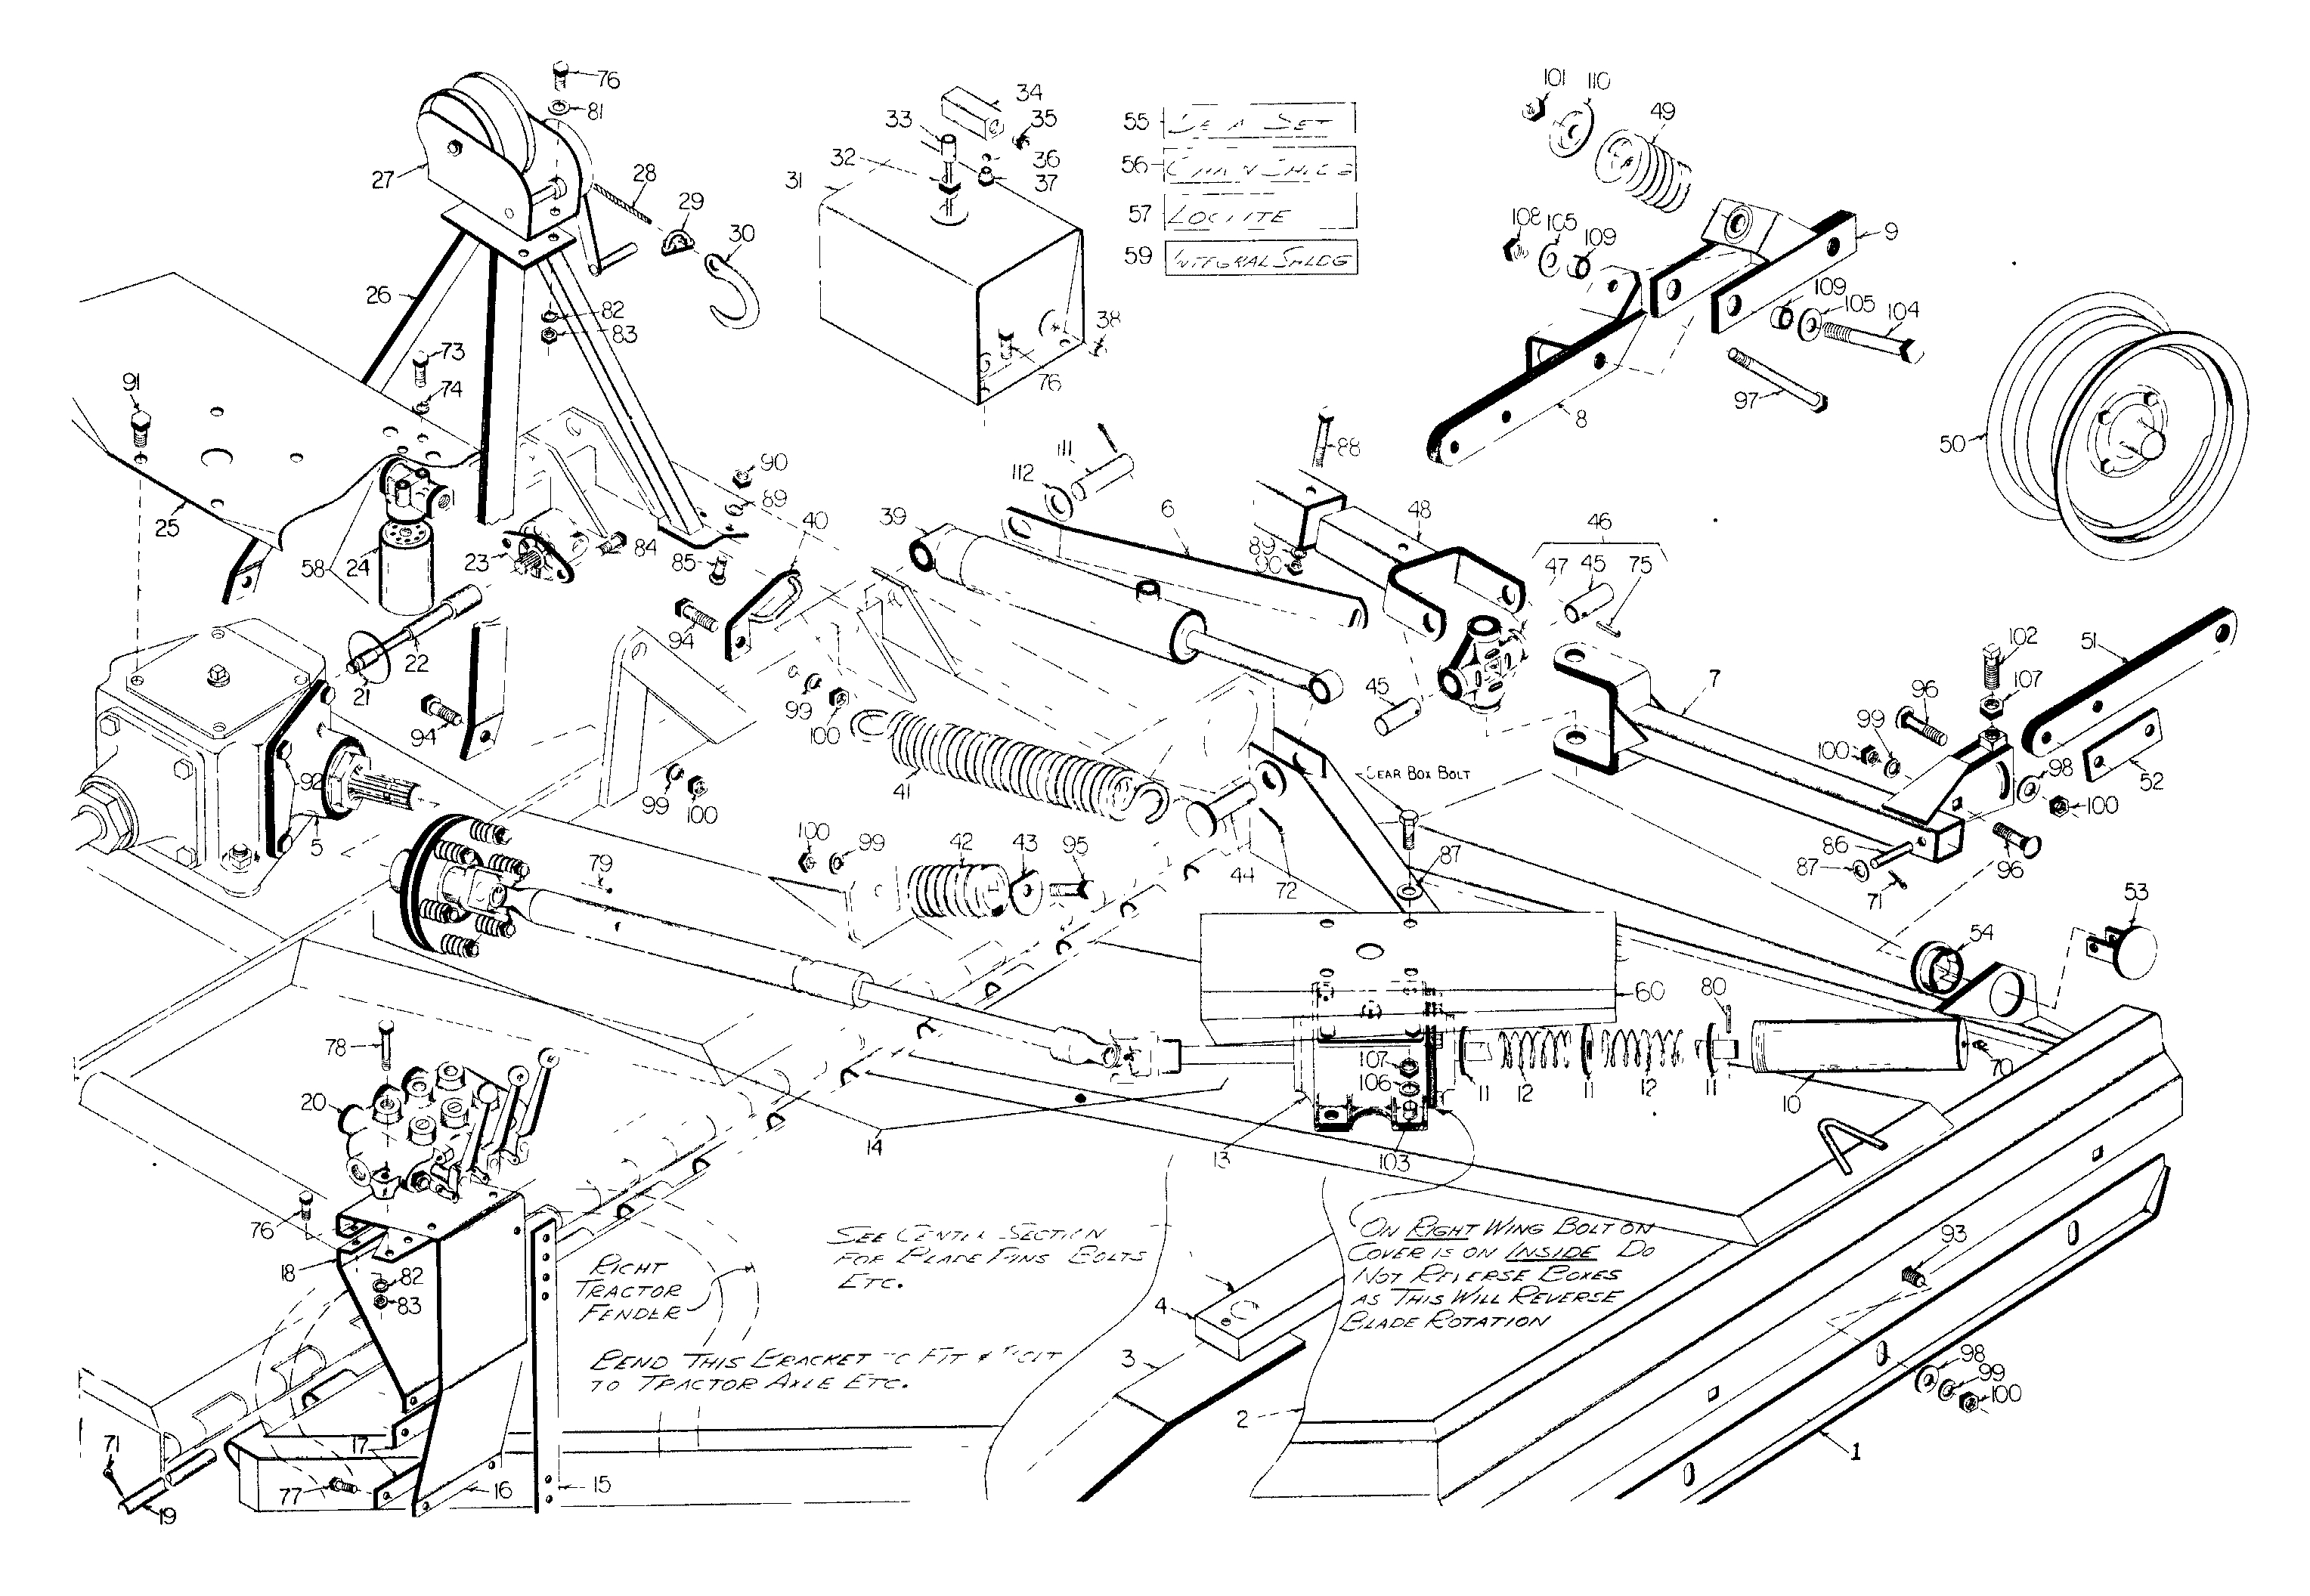 Woods Mower Parts Diagrams Woods 2126 Rotary Cutter Parts Diagram 1001 Best Wood Inspiration